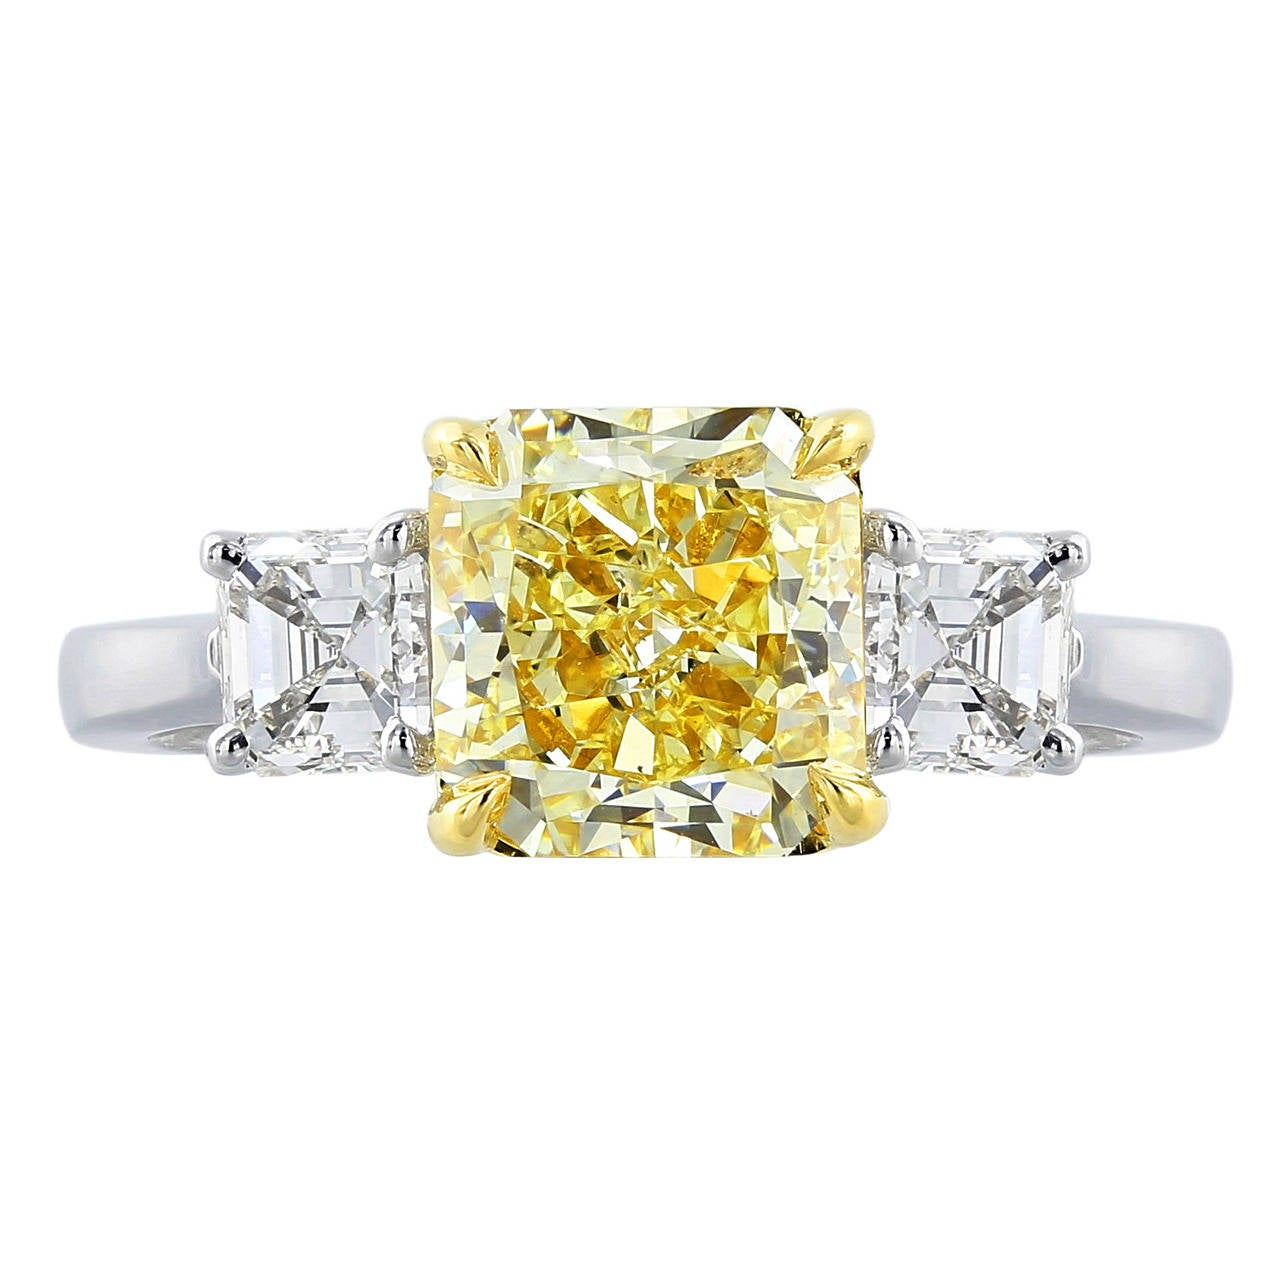 2 48 Carat Yellow Diamond Ring For Sale at 1stdibs